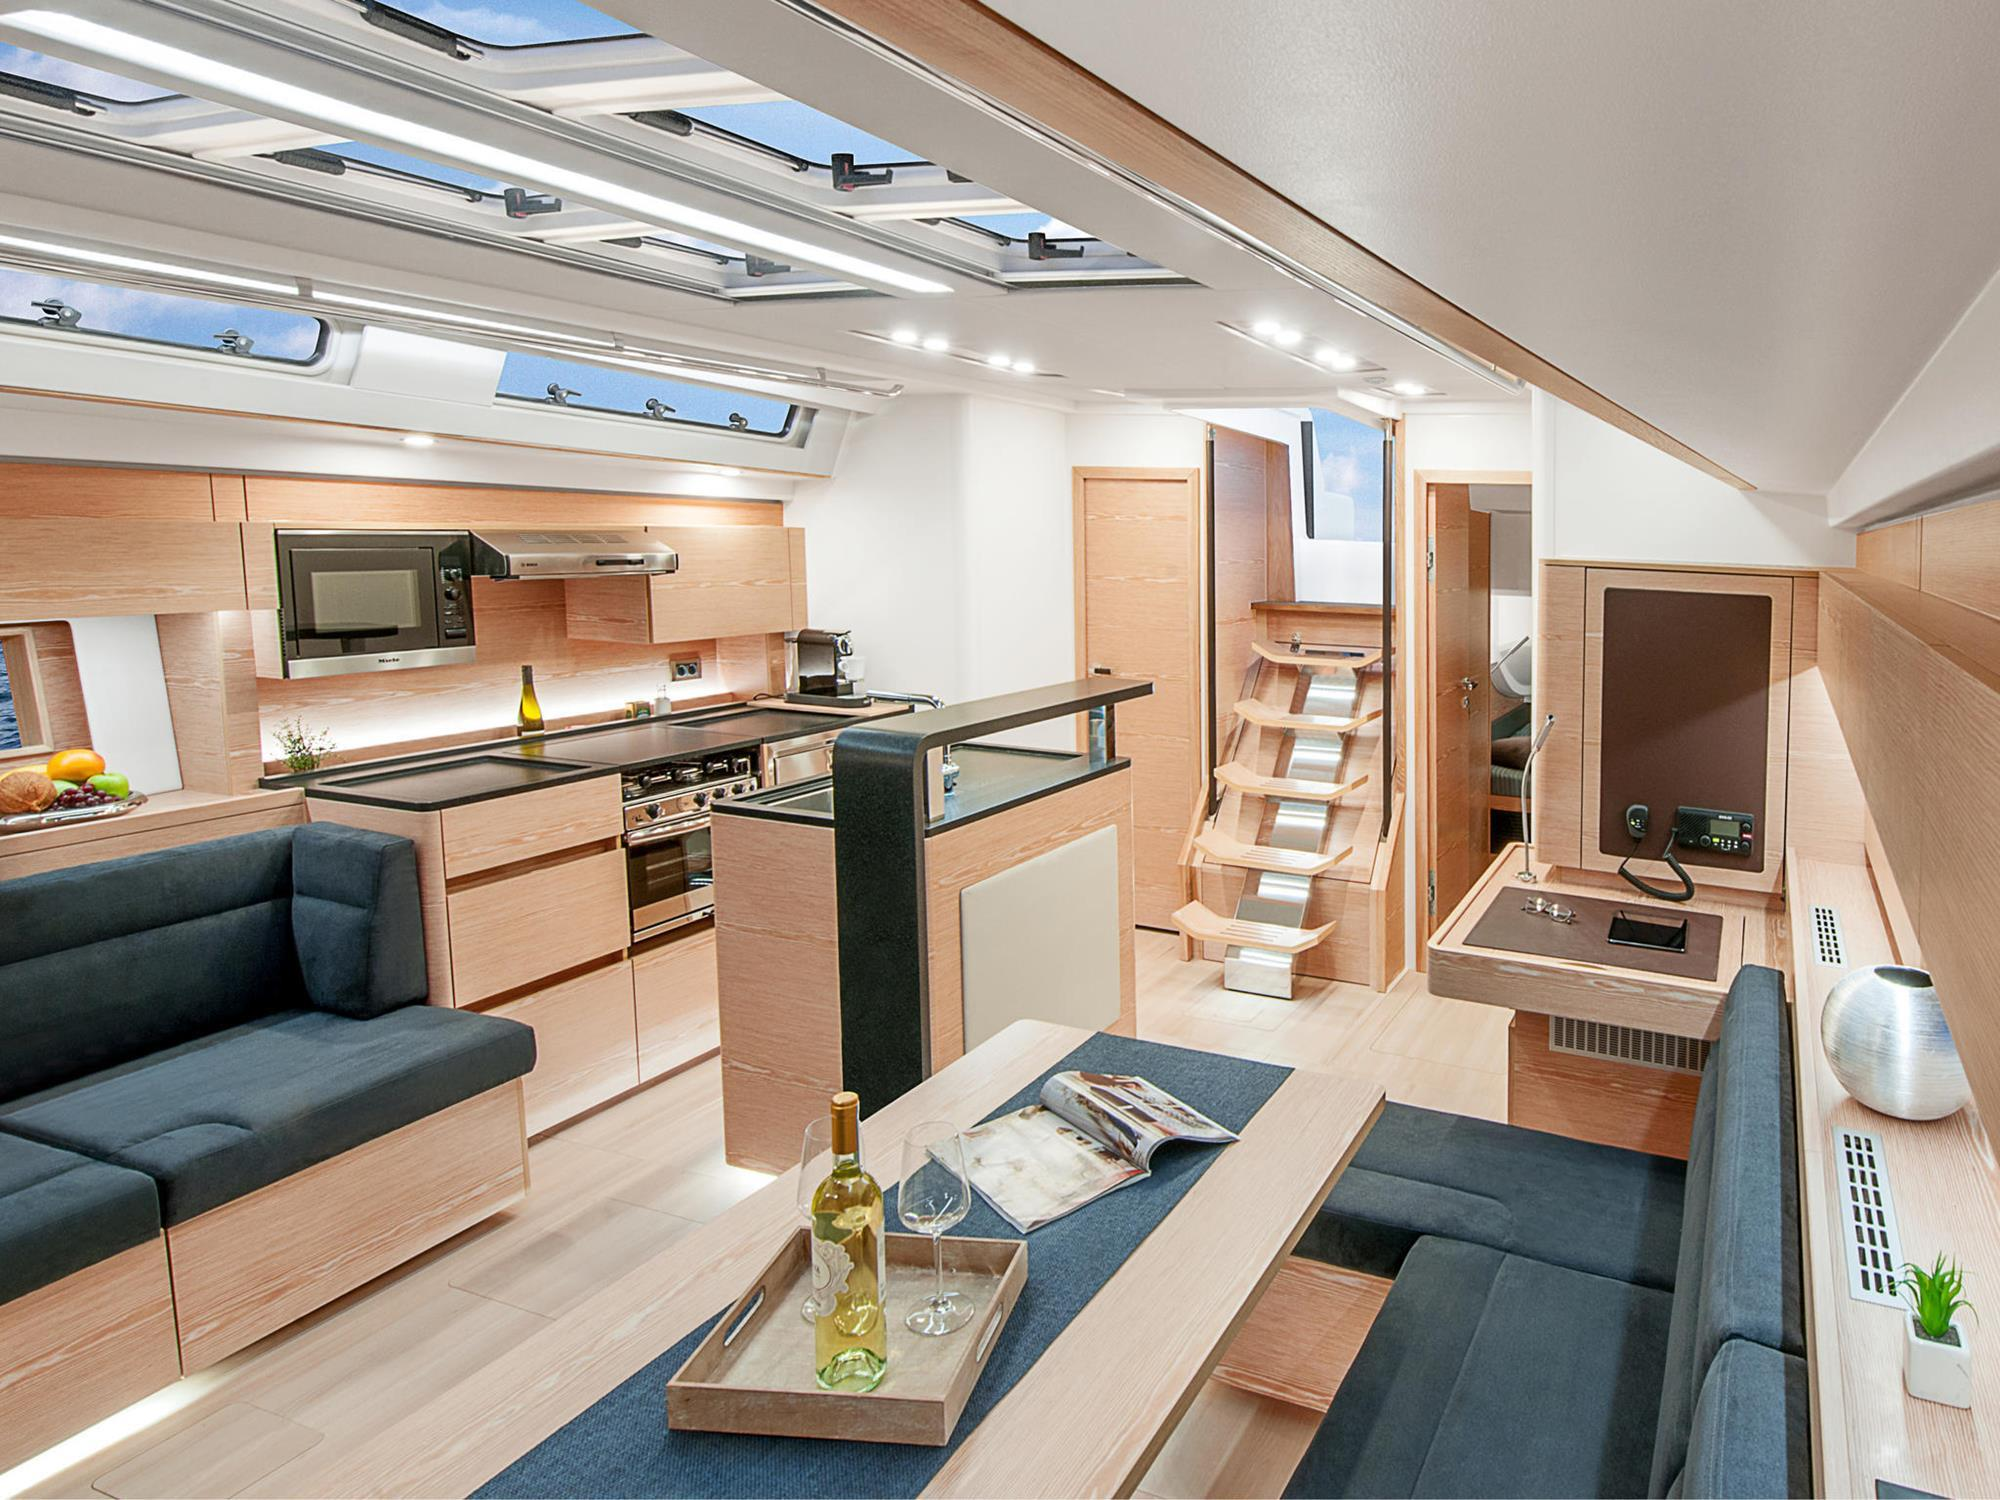 Galley Design And Equipment Article International Boat